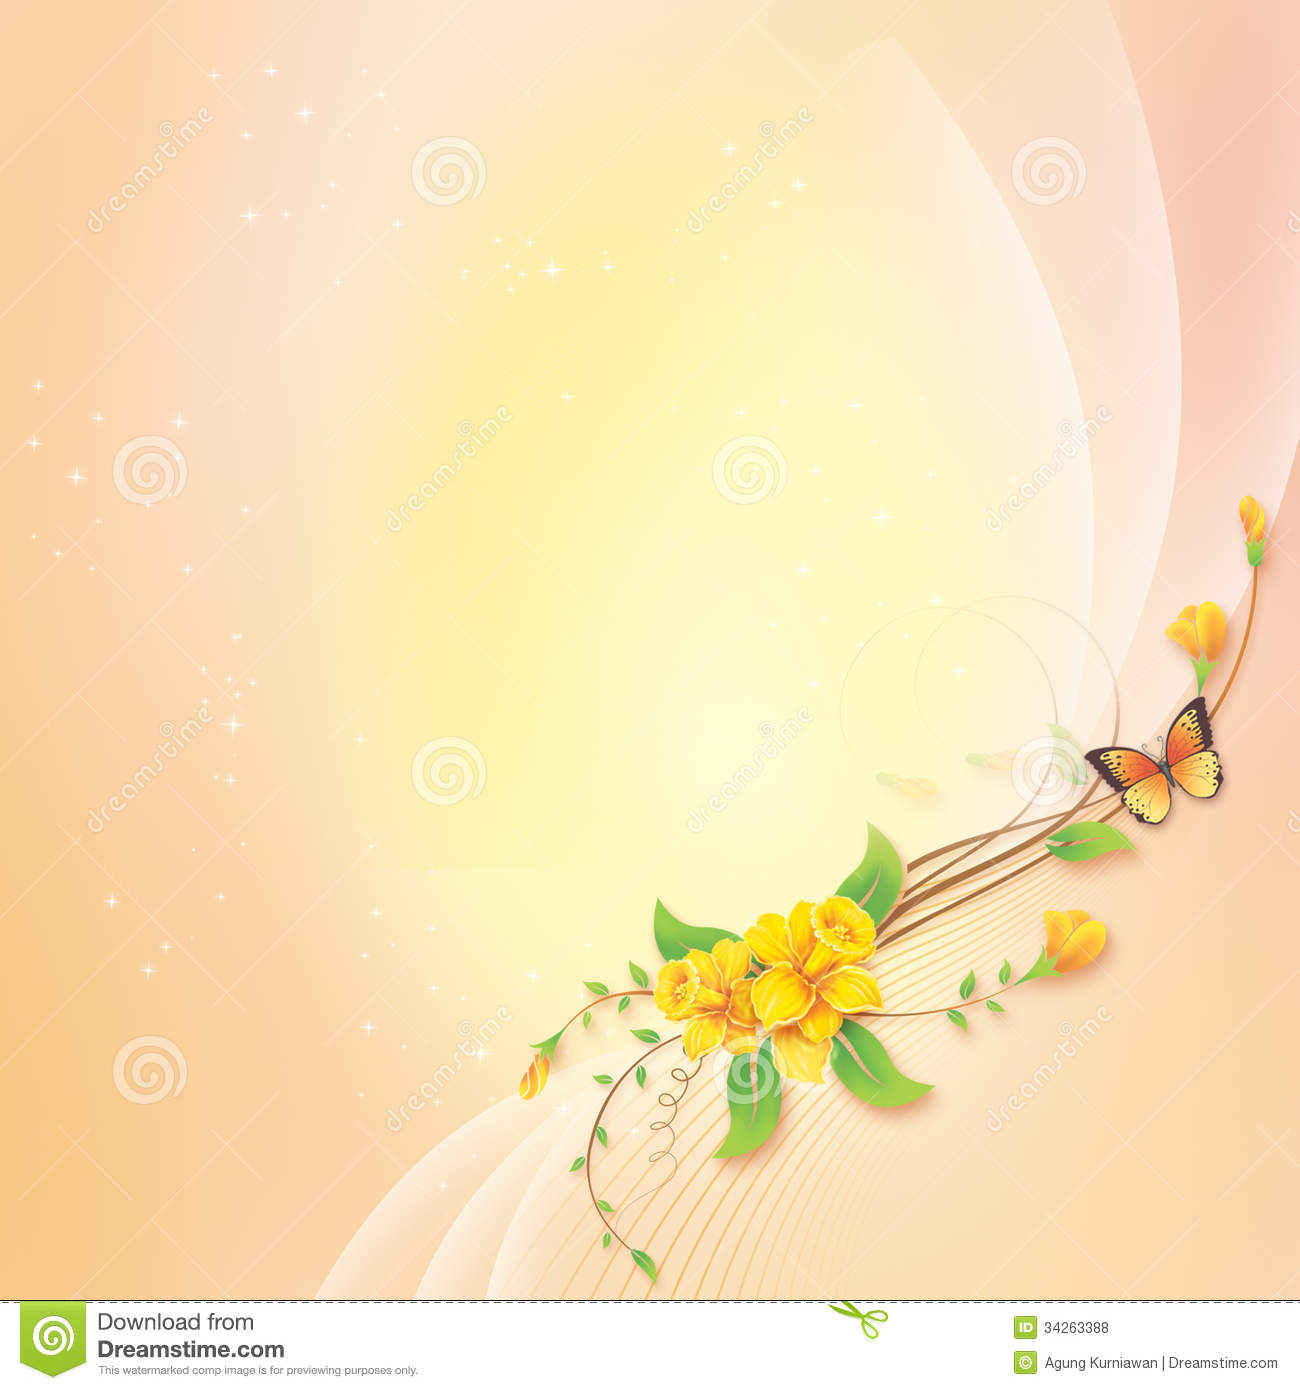 Flower with abstract background for greeting card stock illustration flower with abstract background for greeting card m4hsunfo